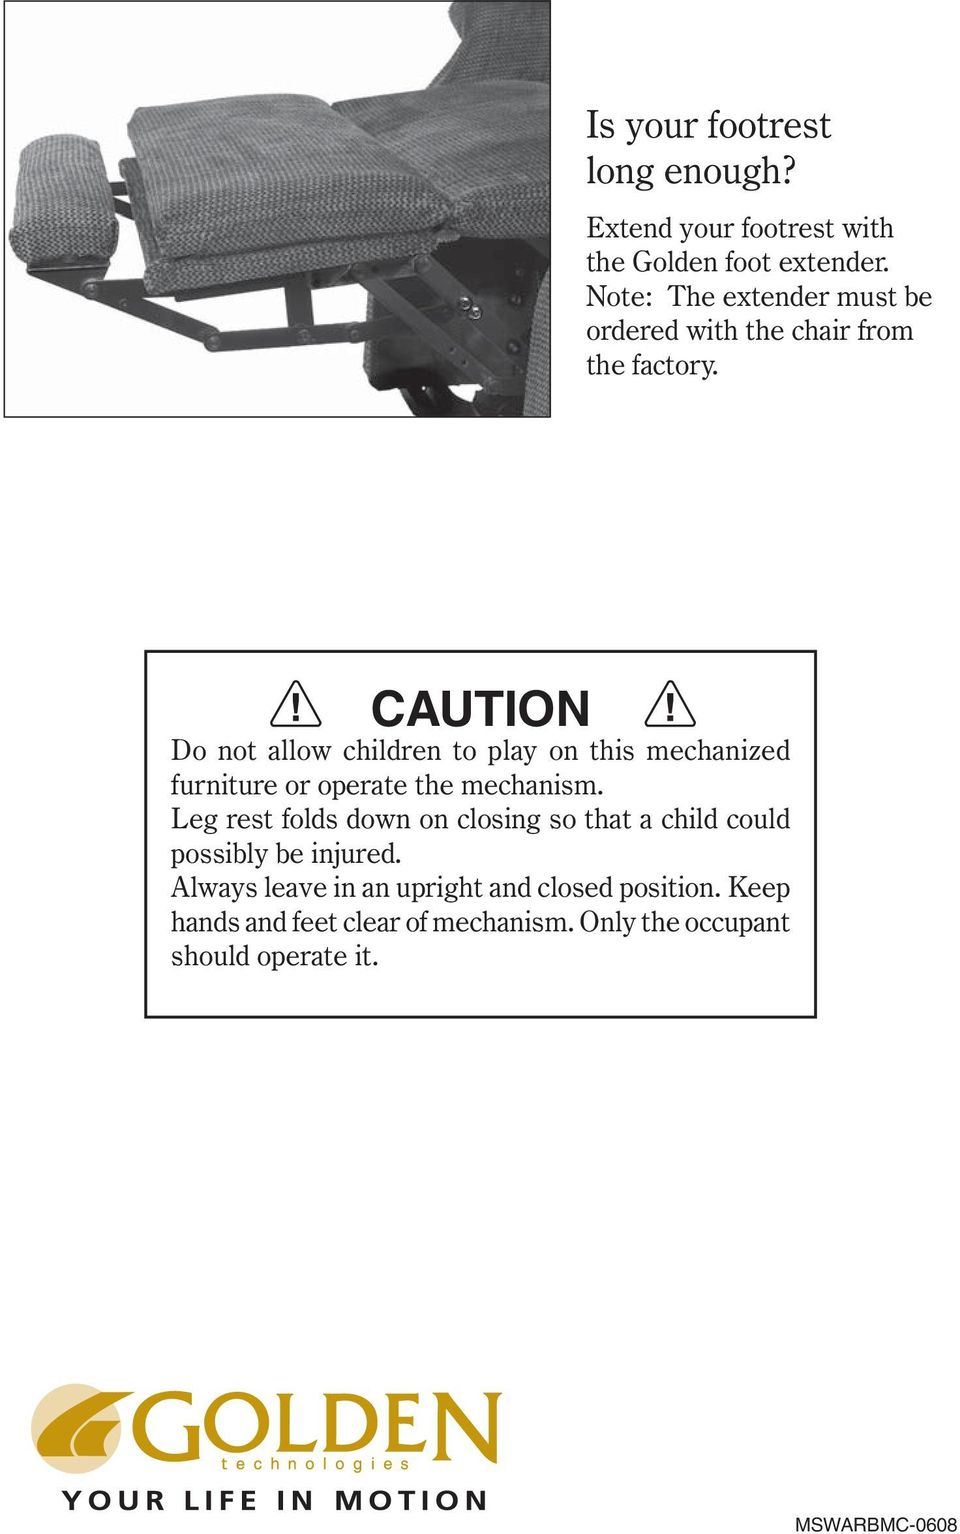 CAUTION Do not allow children to play on this mechanized furniture or operate the mechanism.